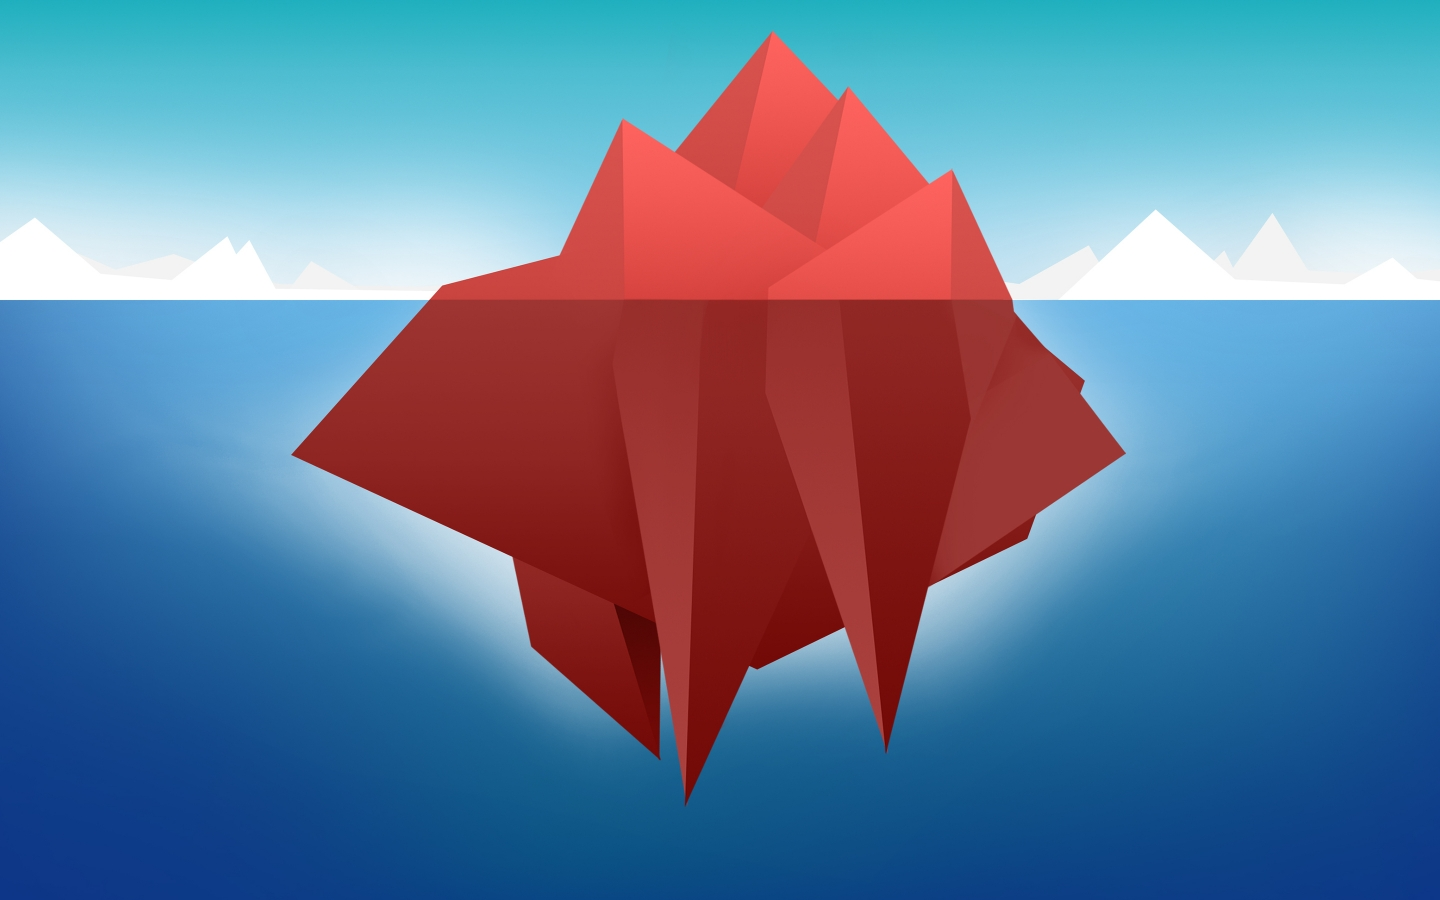 Red Minimal Iceberg for 1440 x 900 widescreen resolution